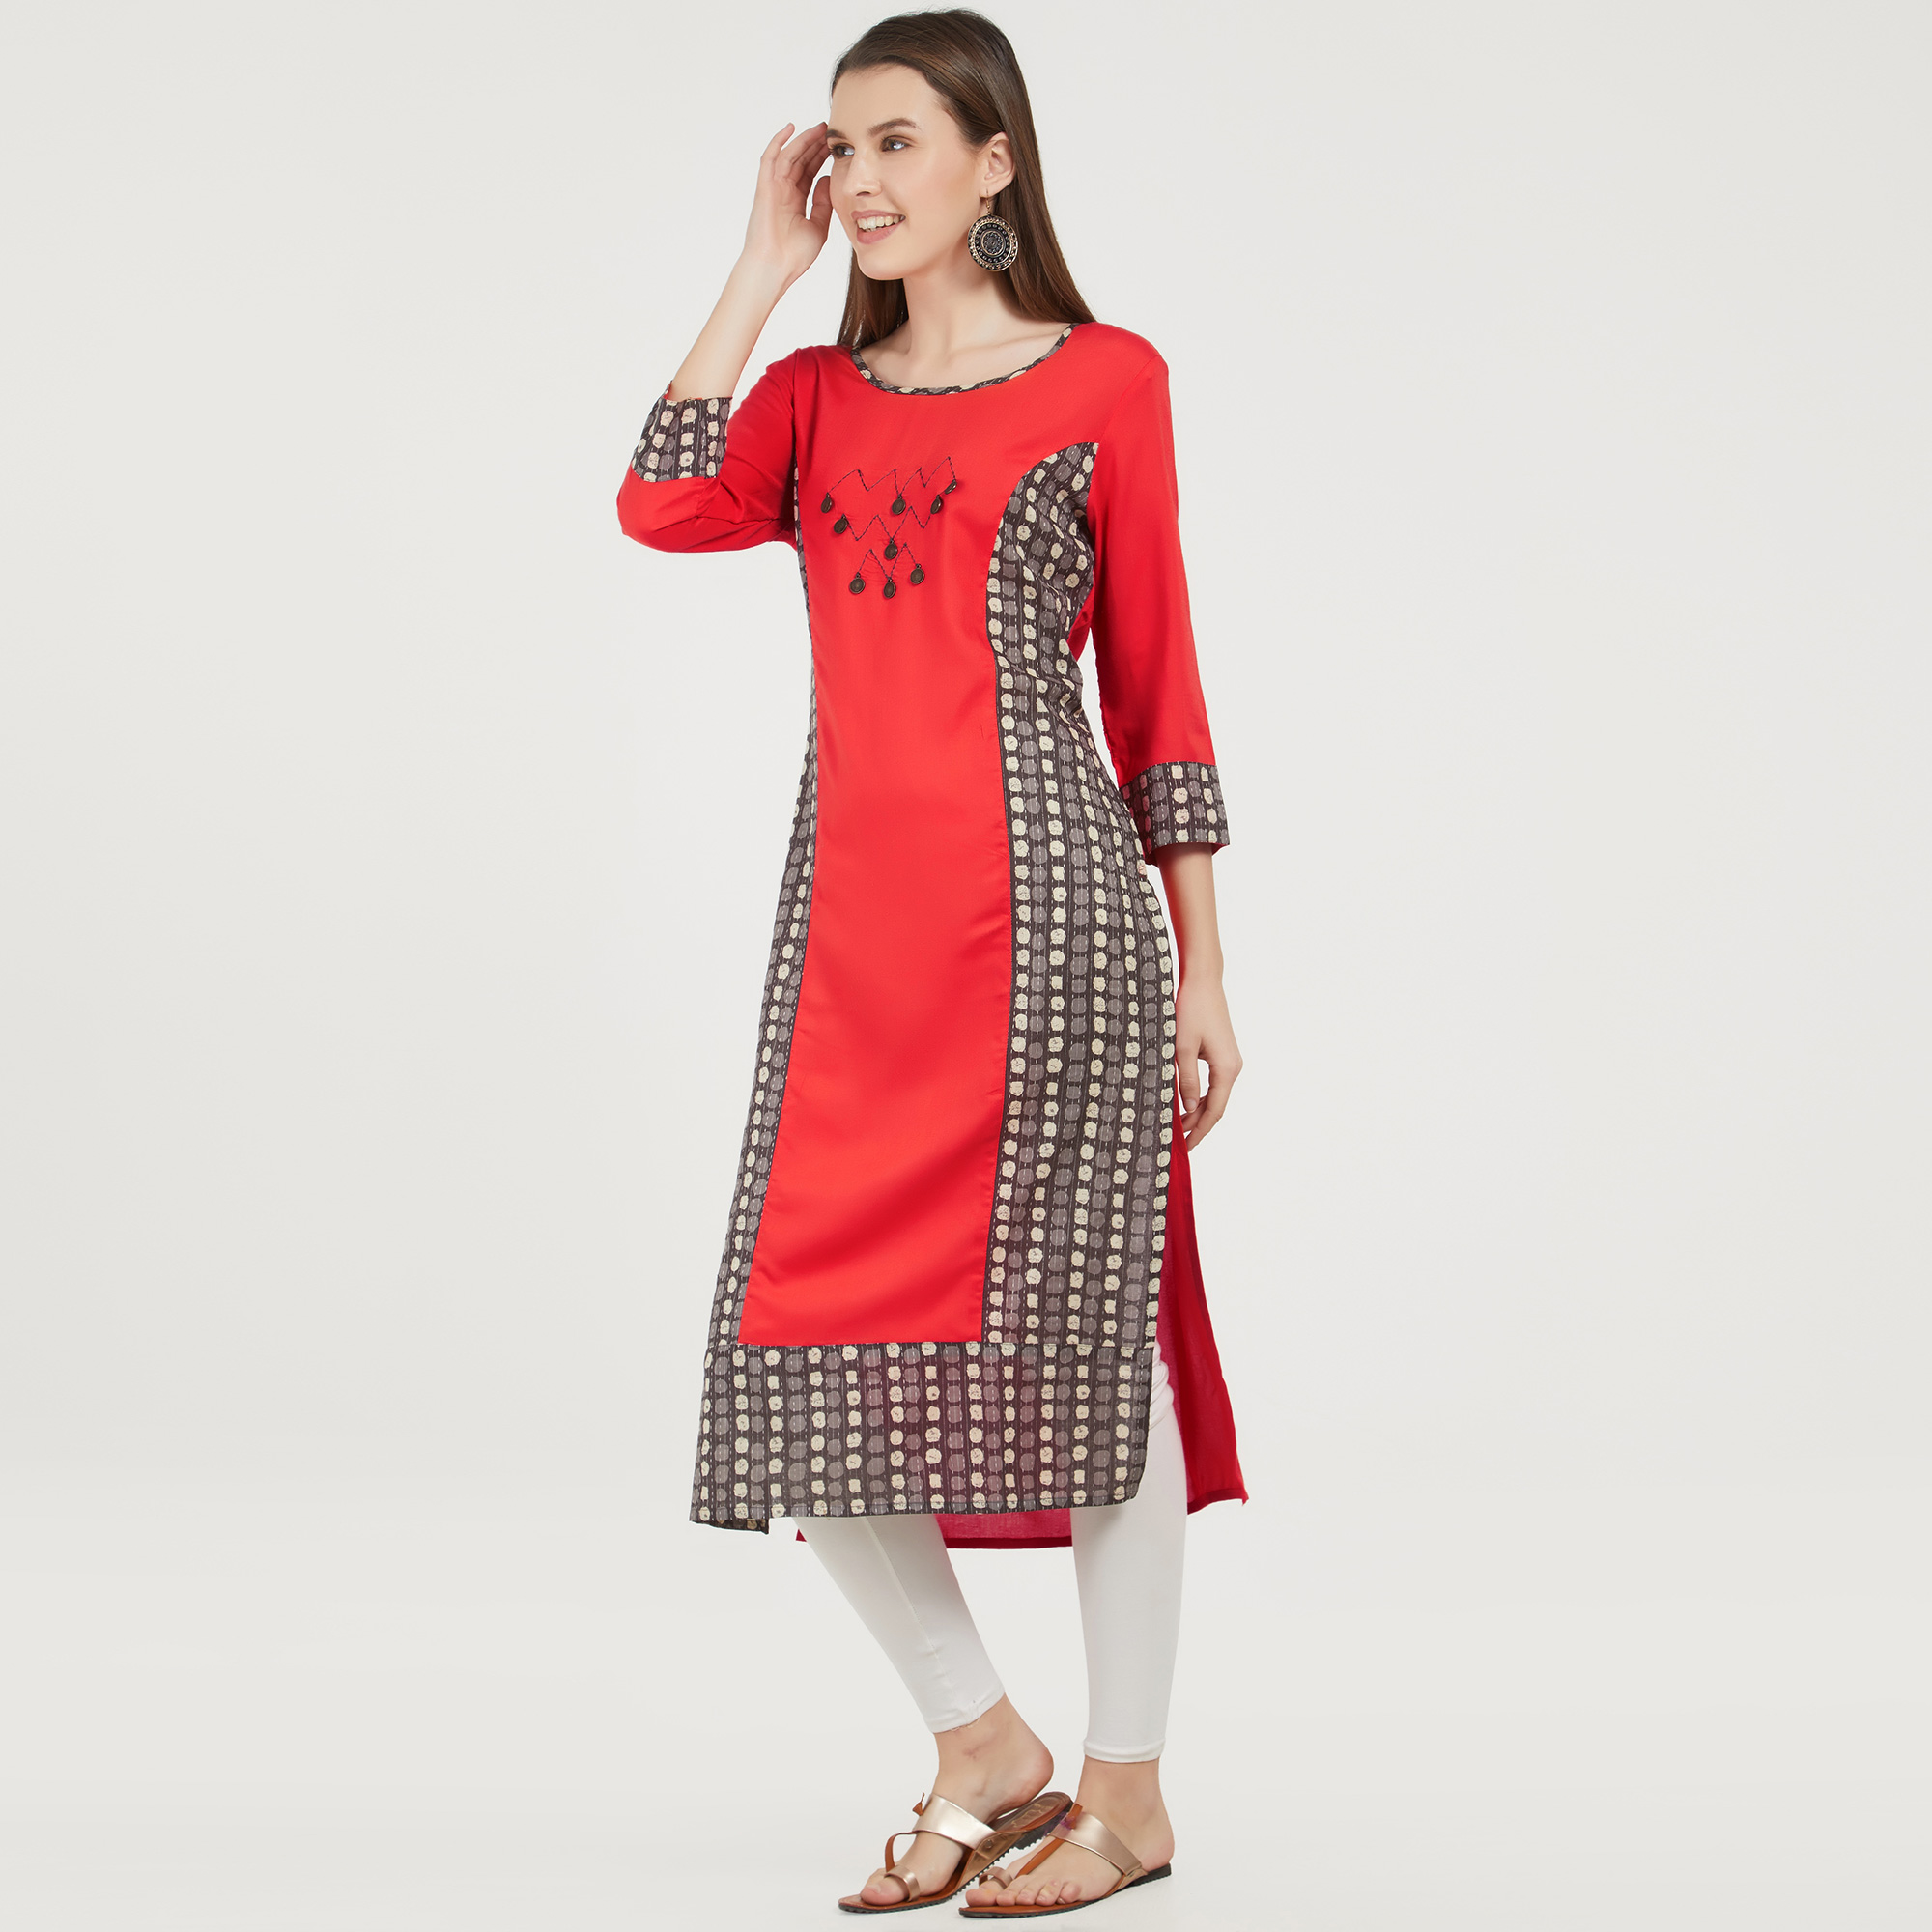 Exceptional Red Colored Casual Printed Rayon Kurti